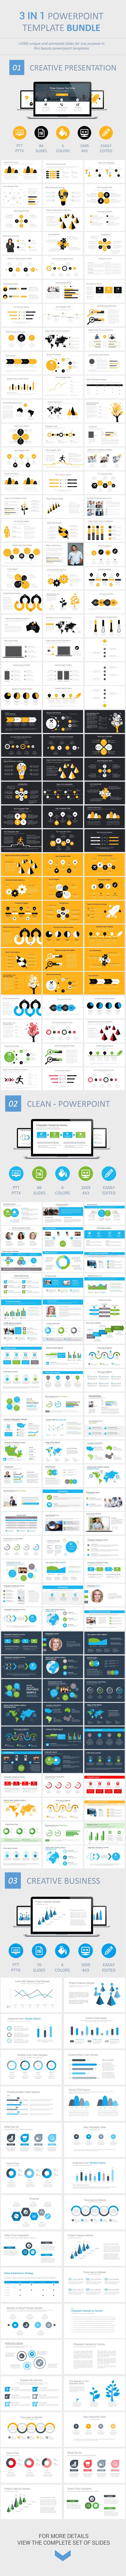 Bundle 3 in 1 Powerpoint Templates (PowerPoint Templates)